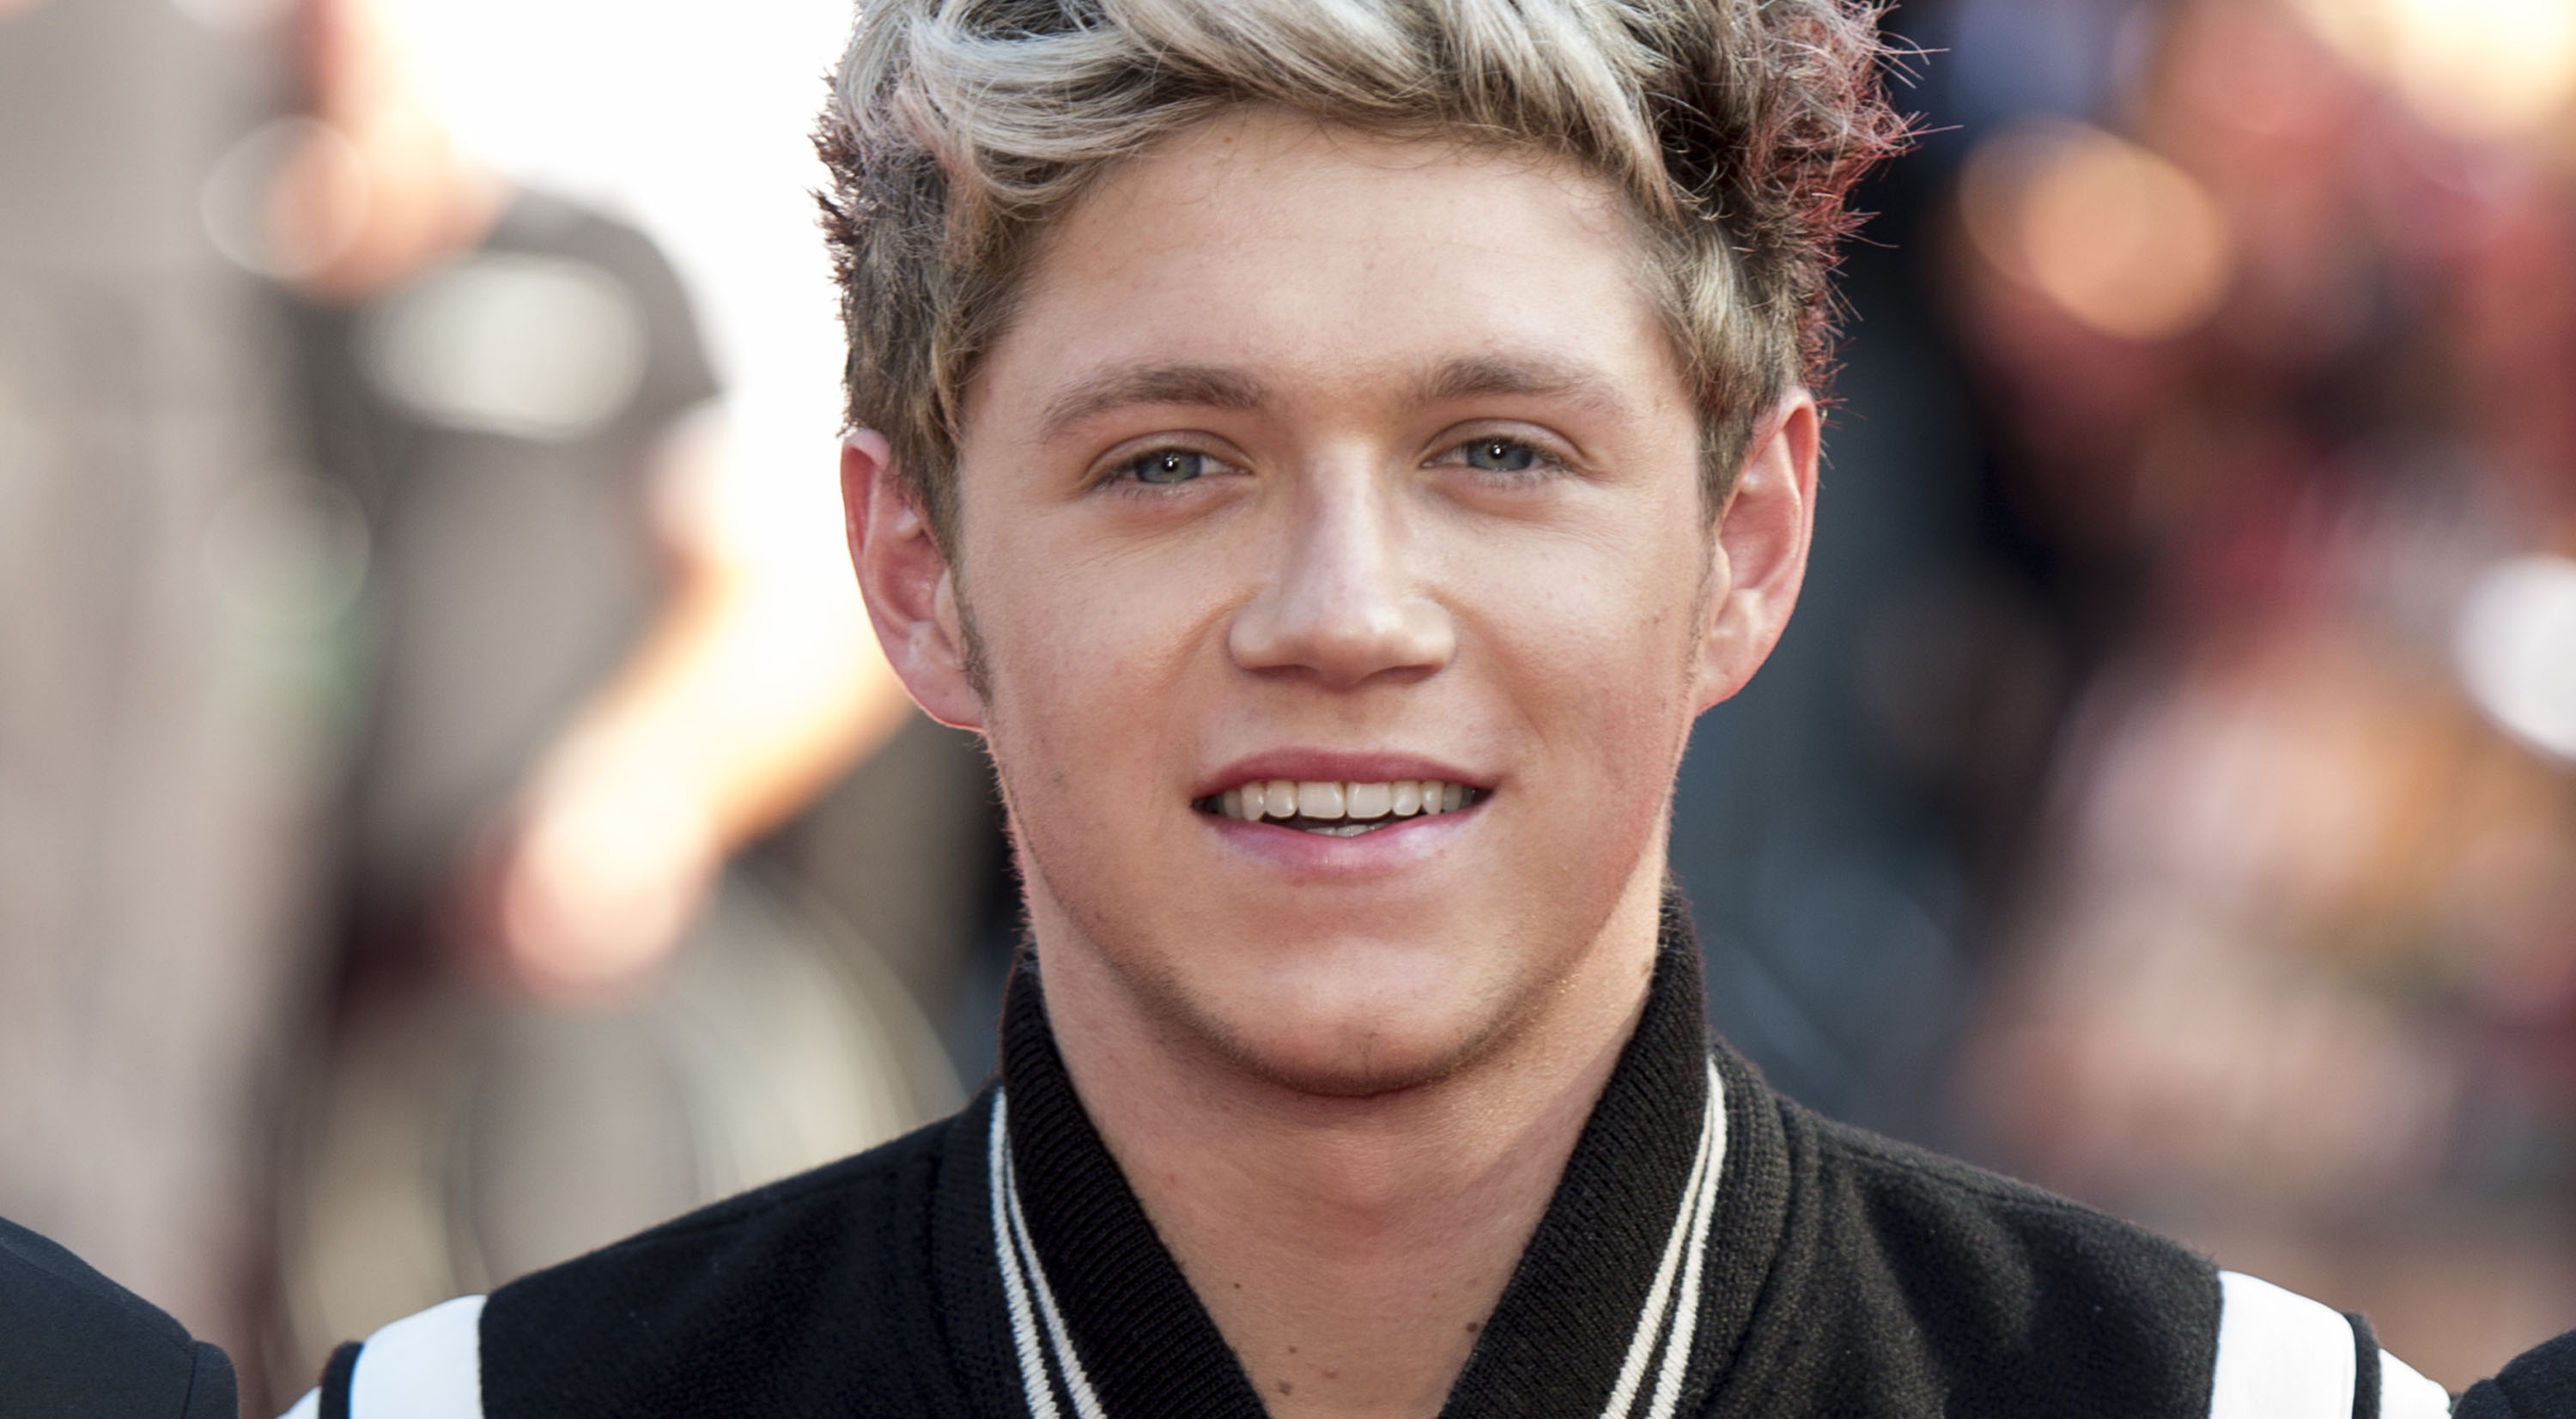 niall horan Niall horan tour dates and concert tickets niall horan concert tour schedule, albums, and live concert information.